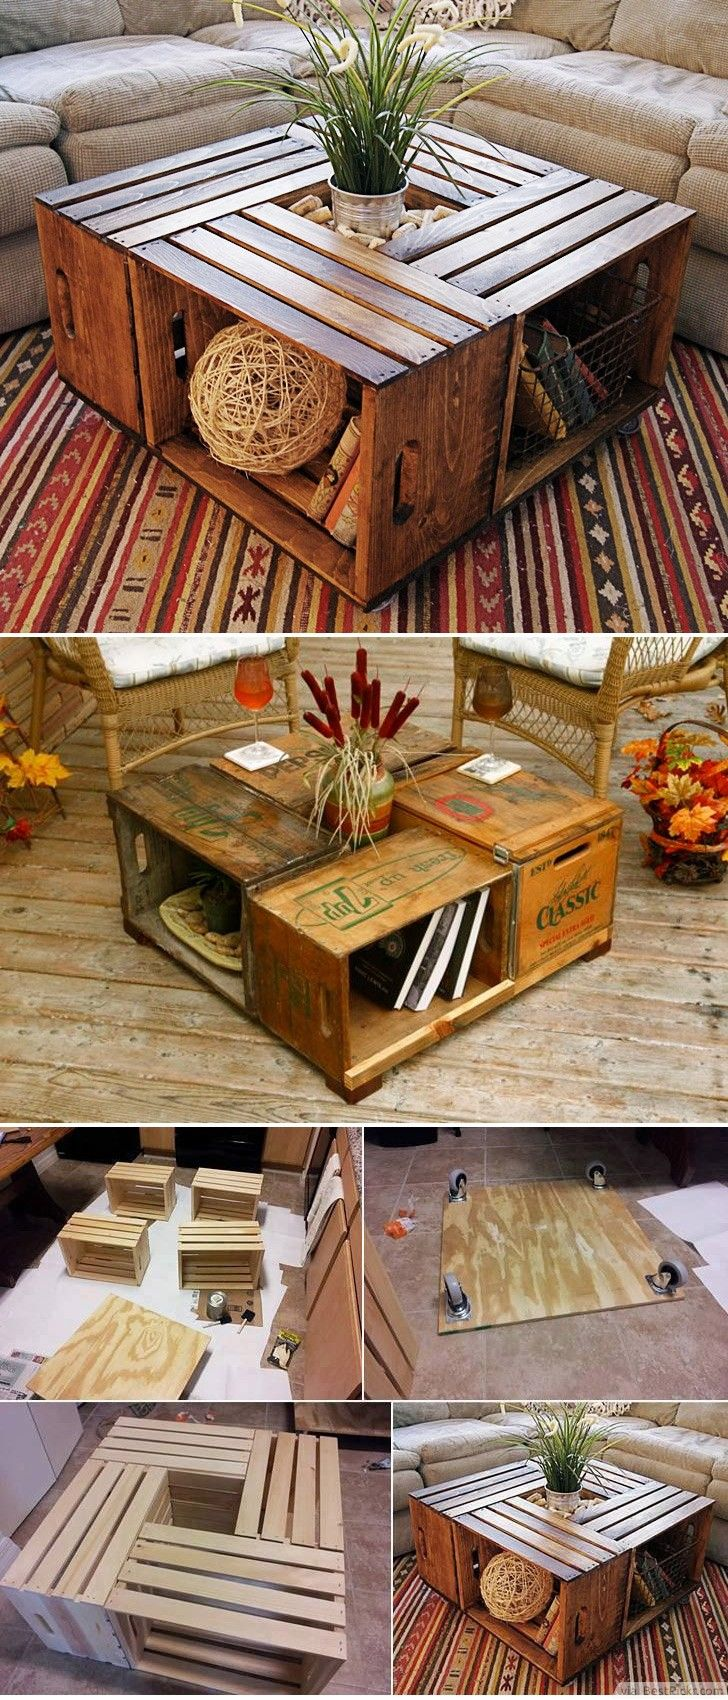 Antique Wine Crate Or Wood Box Coffee Table Diy Http Bestpickr Com Cool Unique Coffee Tables U